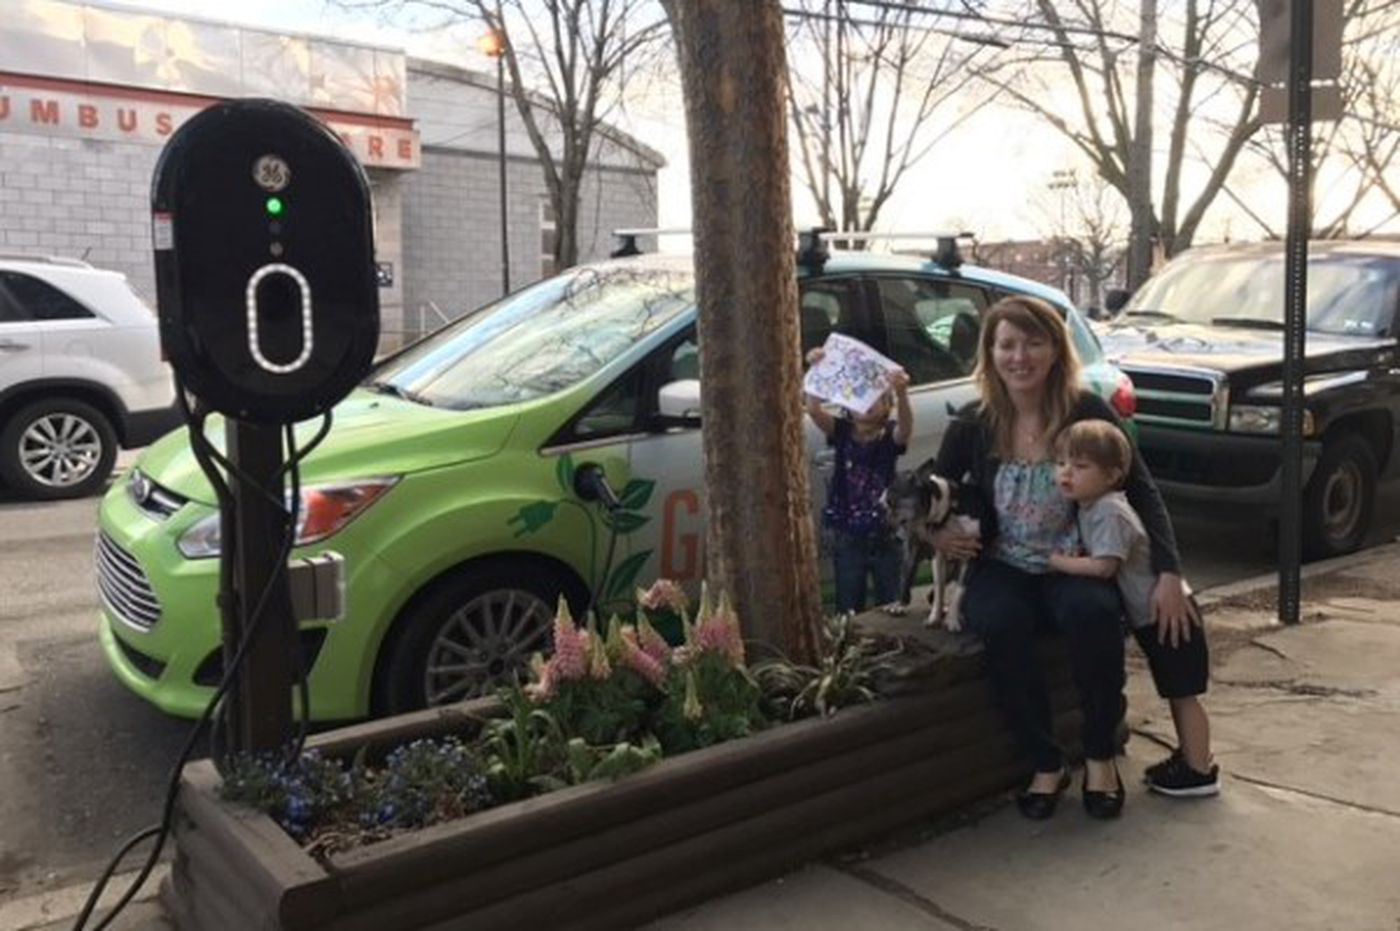 Philadelphia City Council passes moratorium on electric vehicle parking permits